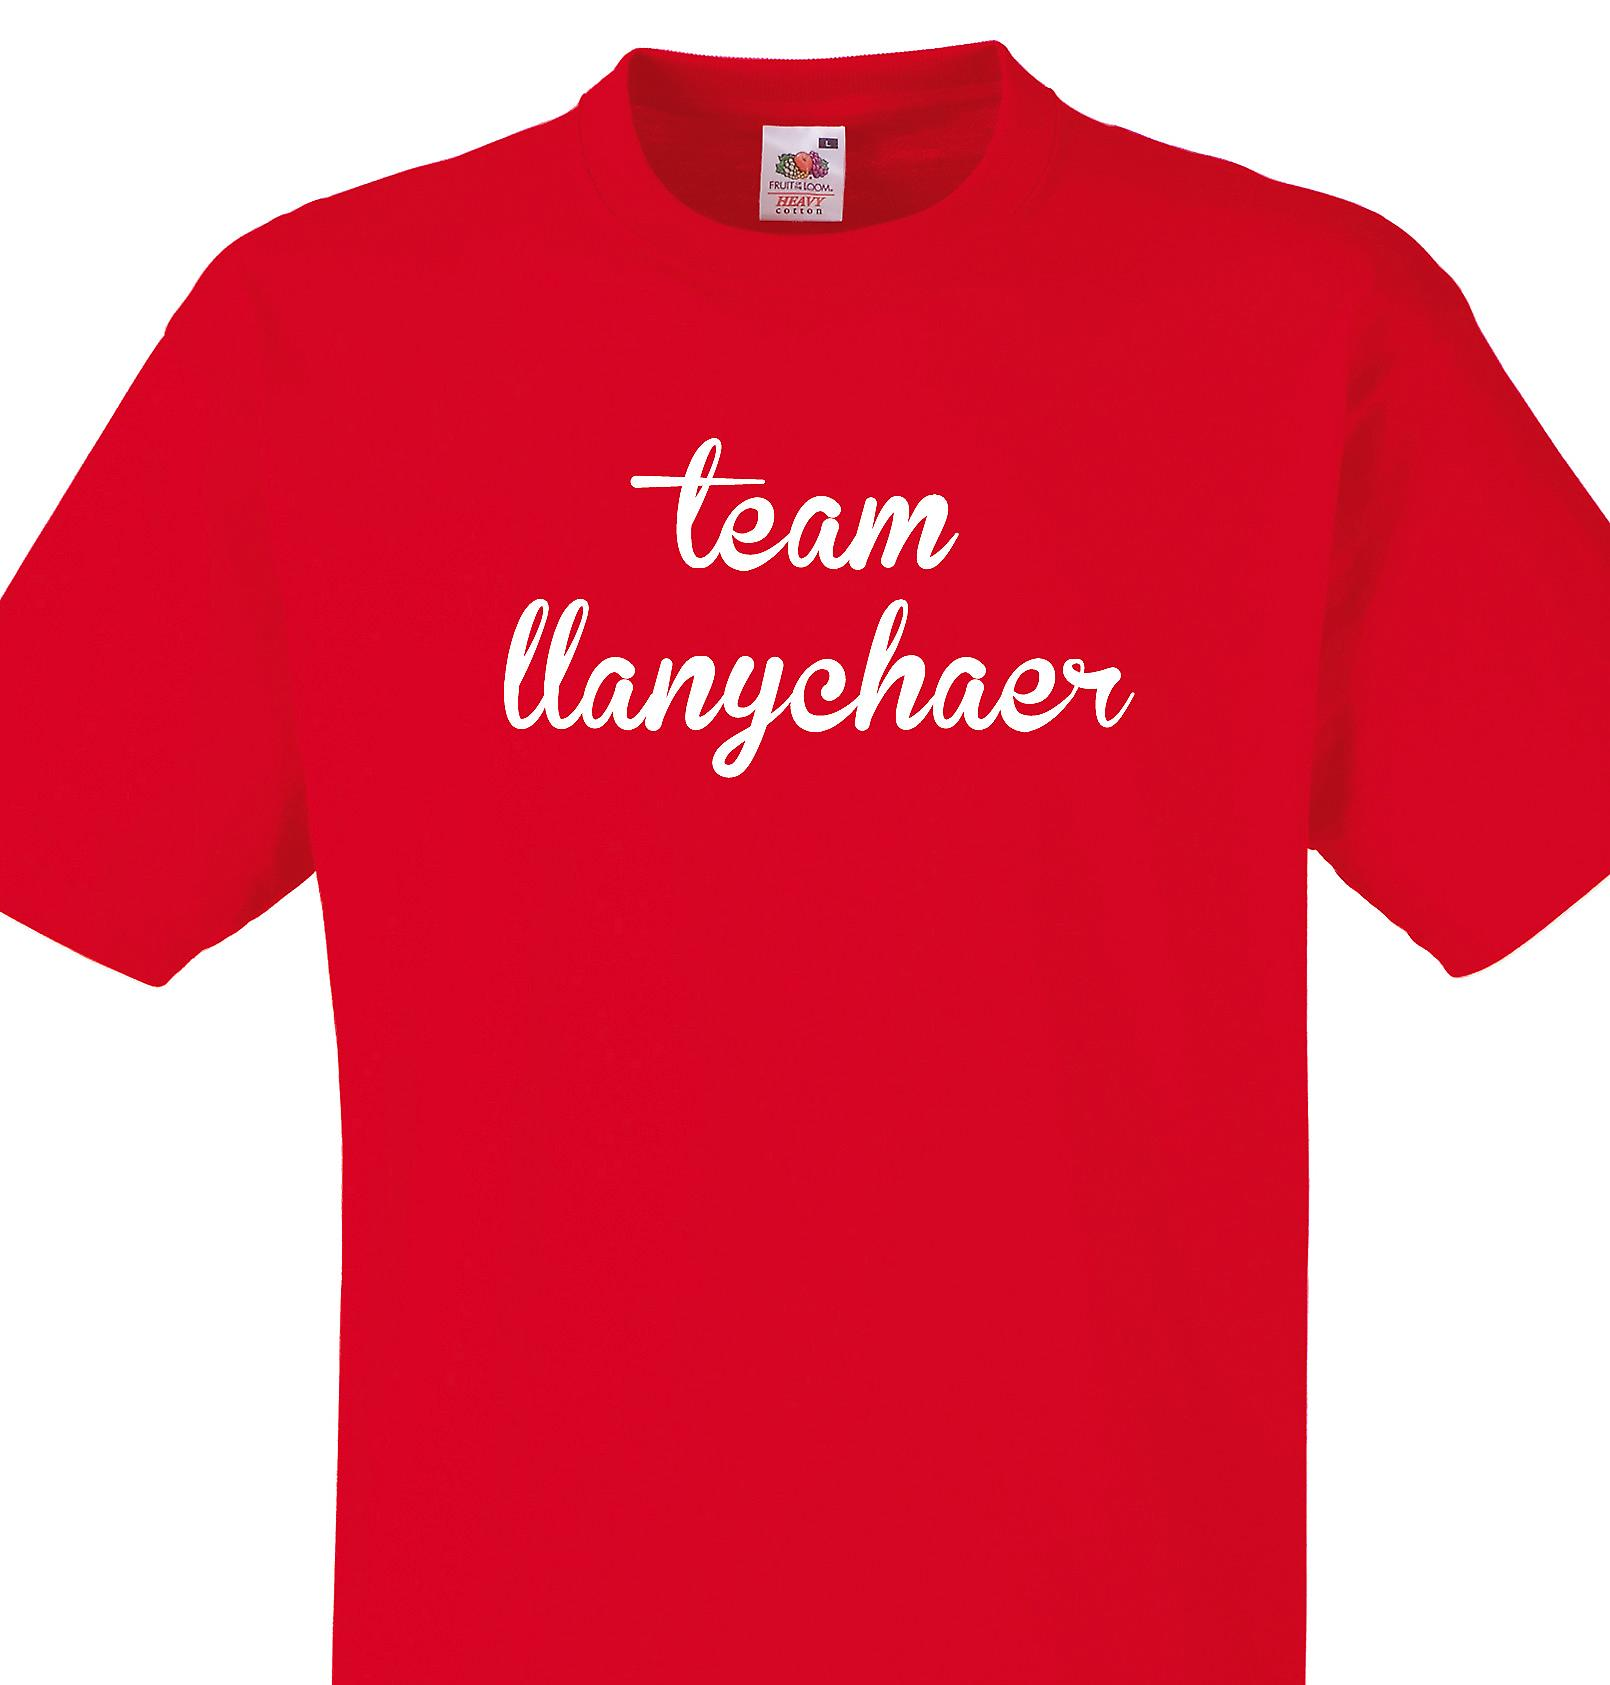 Team Llanychaer Red T shirt